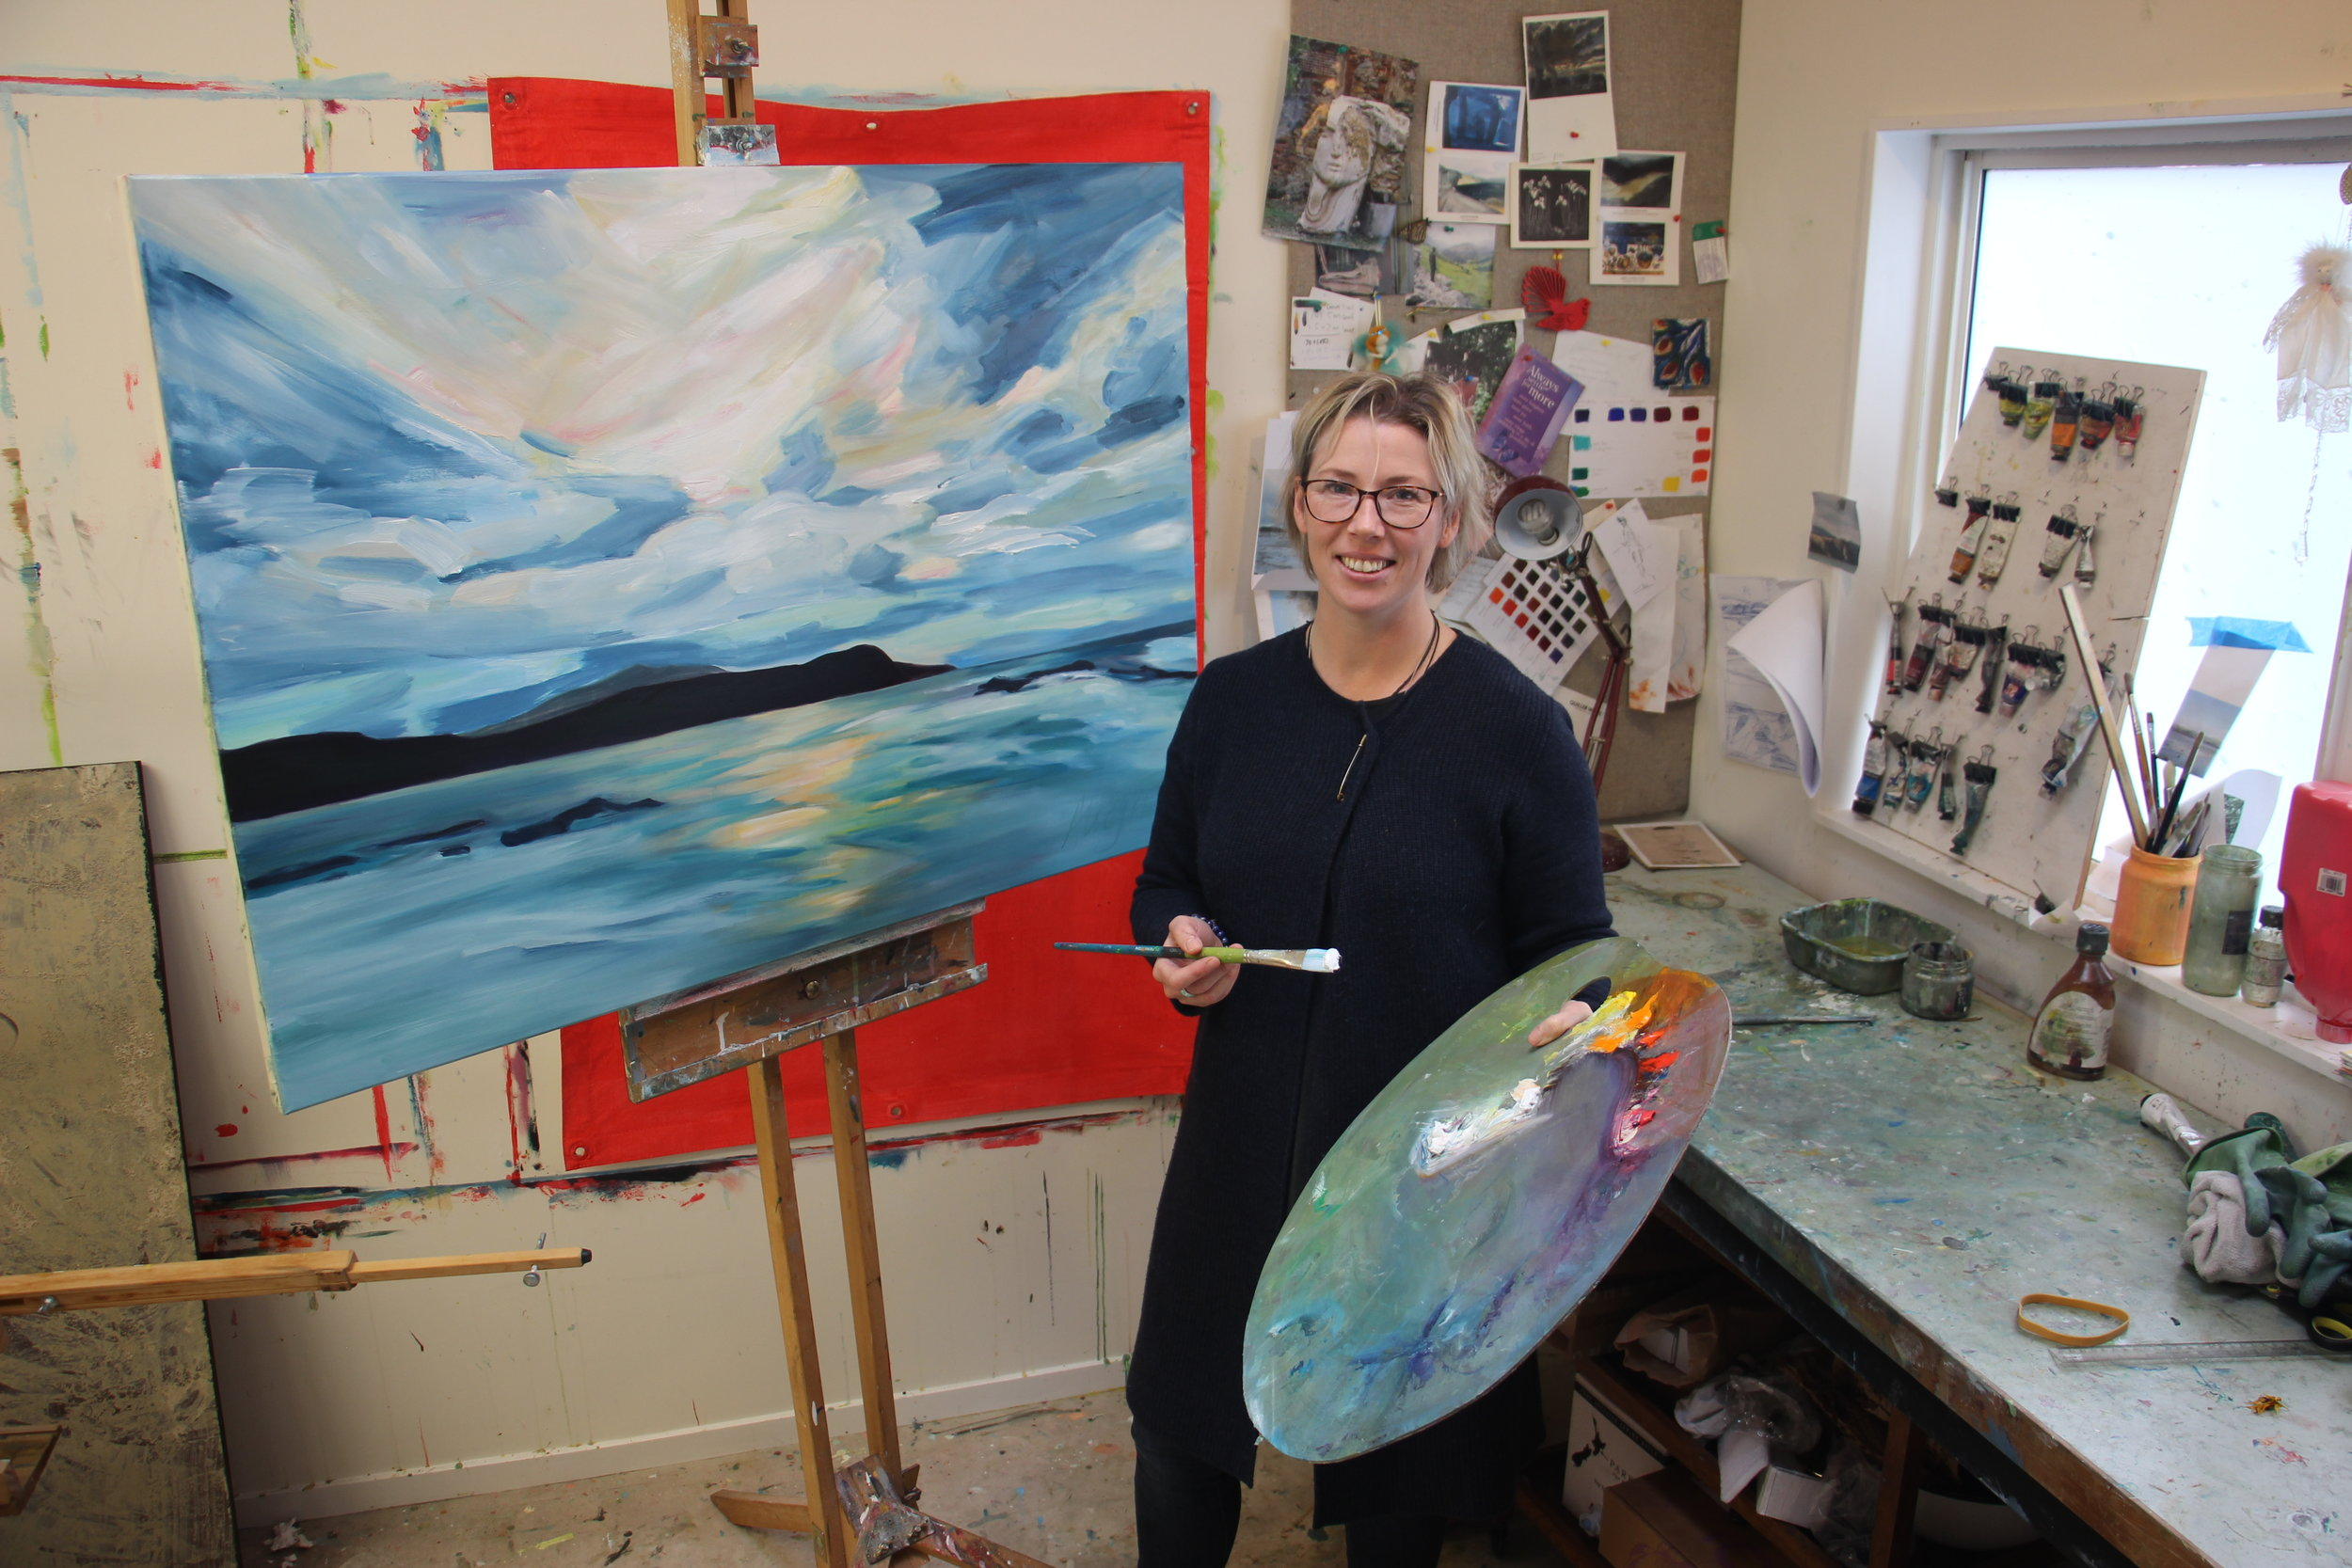 Porirua artist Alicja Gear says her standing as an artist has greatly benefitted from being a two-times winner at the awards, and is encouraging fellow artists to enter work in this year's awards.